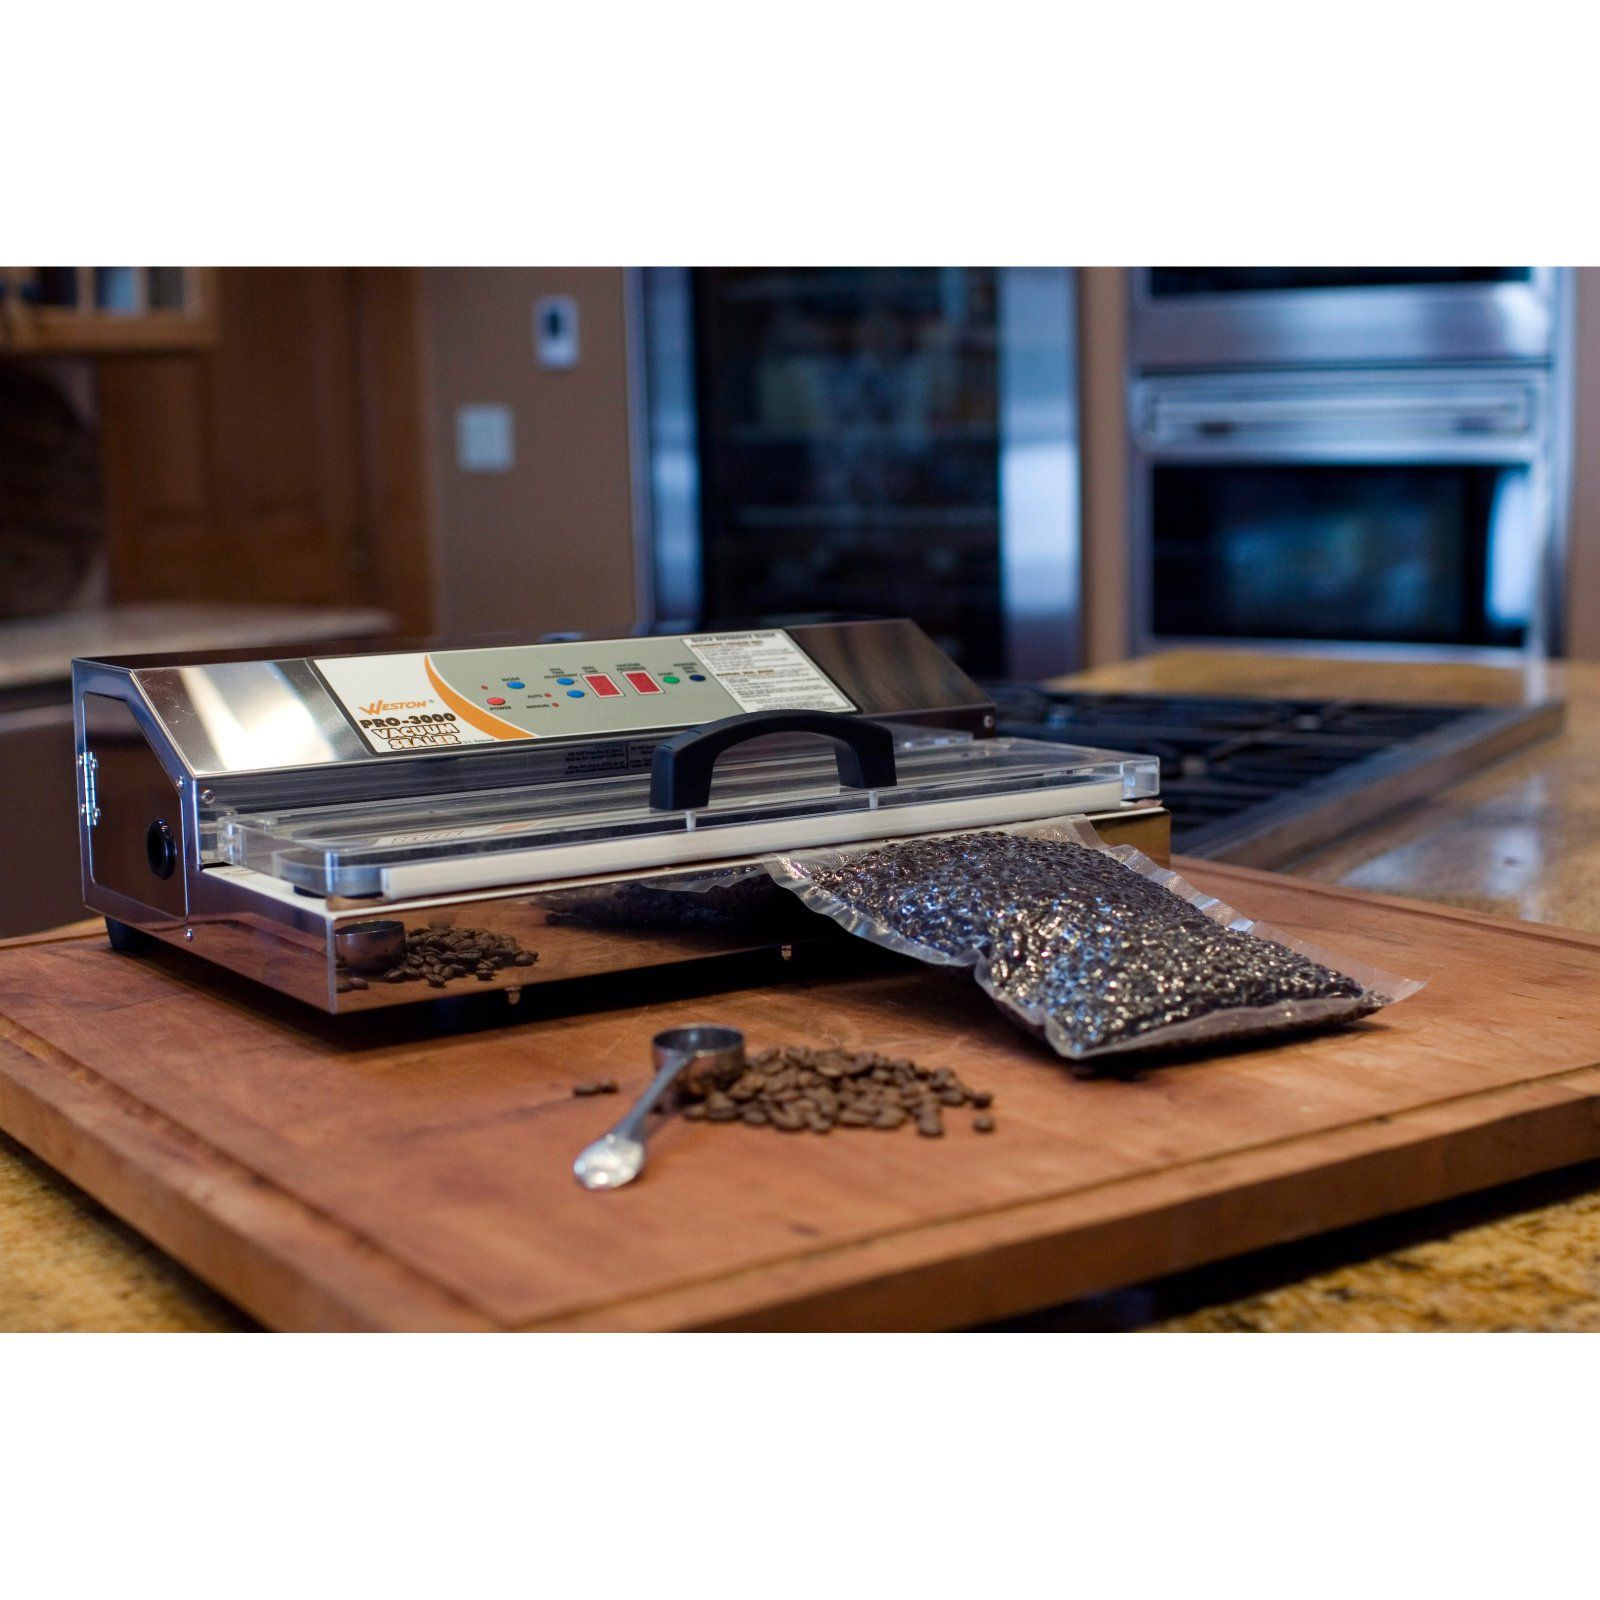 Weston PRO-3000 Stainless Steel Vacuum Sealer #Ad #PRO, #paid, #Weston, #Stainless